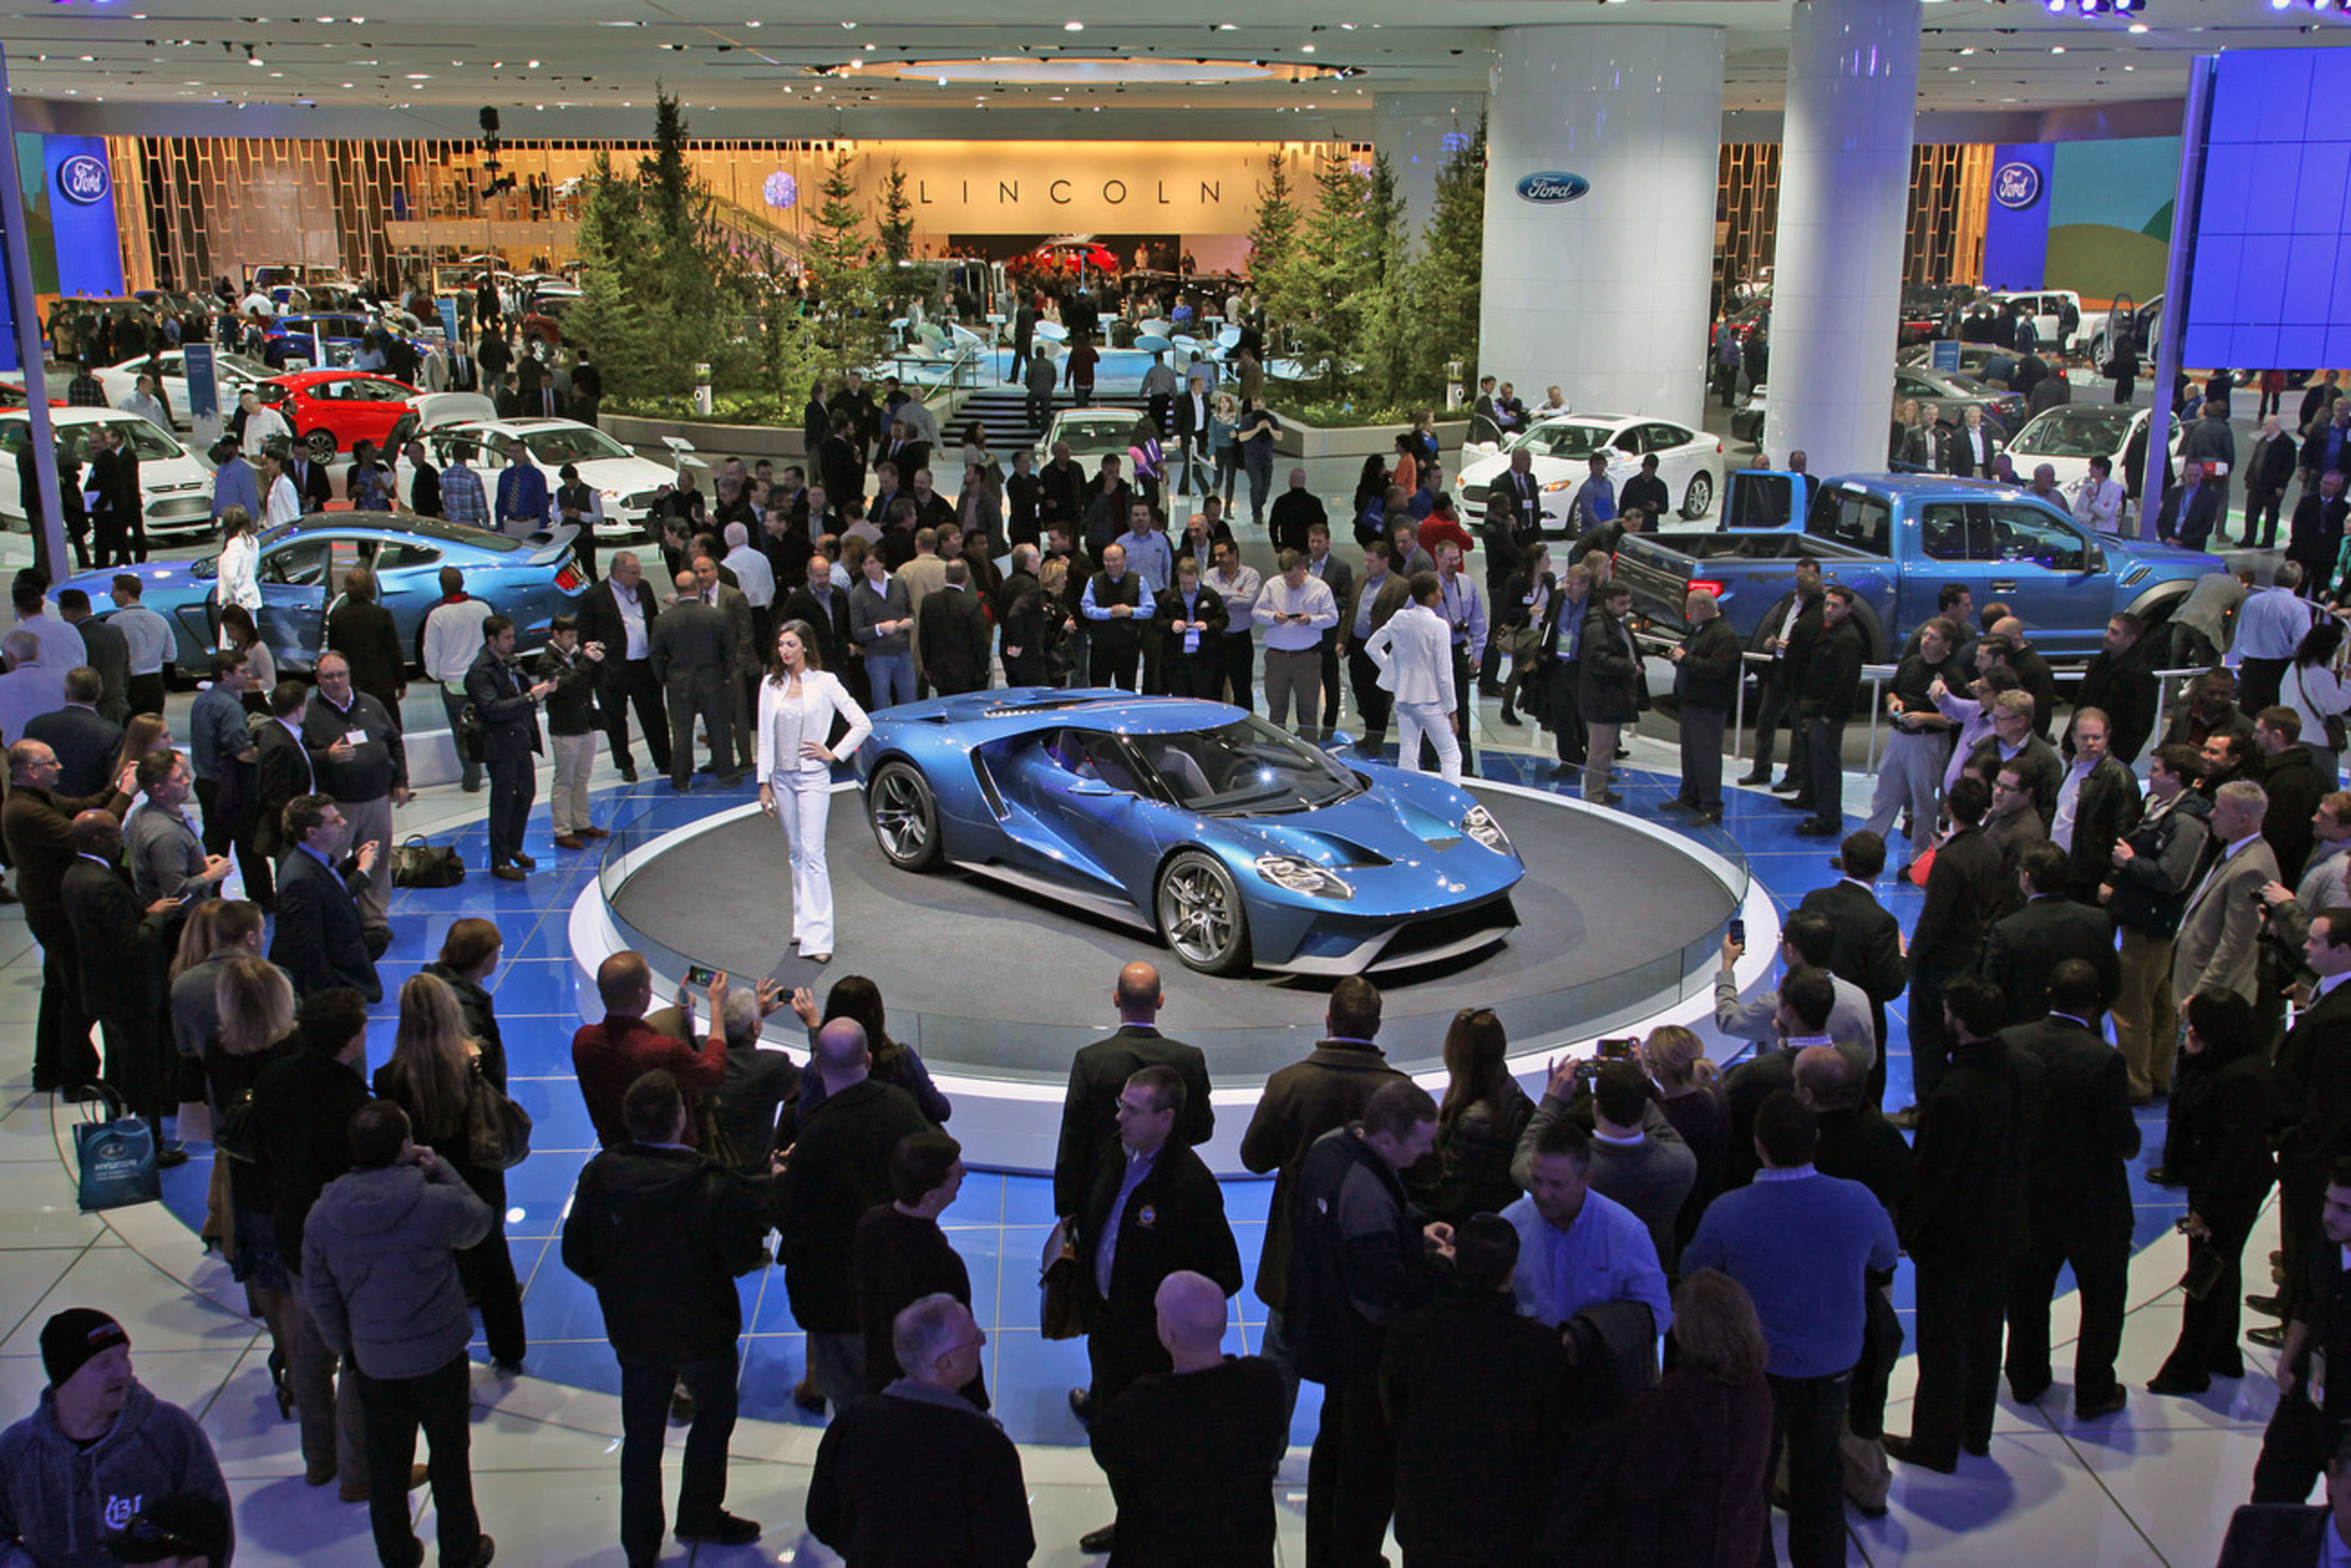 The Ford GT super car was a super star at the 2015 NAIAS, and drew huge crowds of enthusiastic fans throughout ...